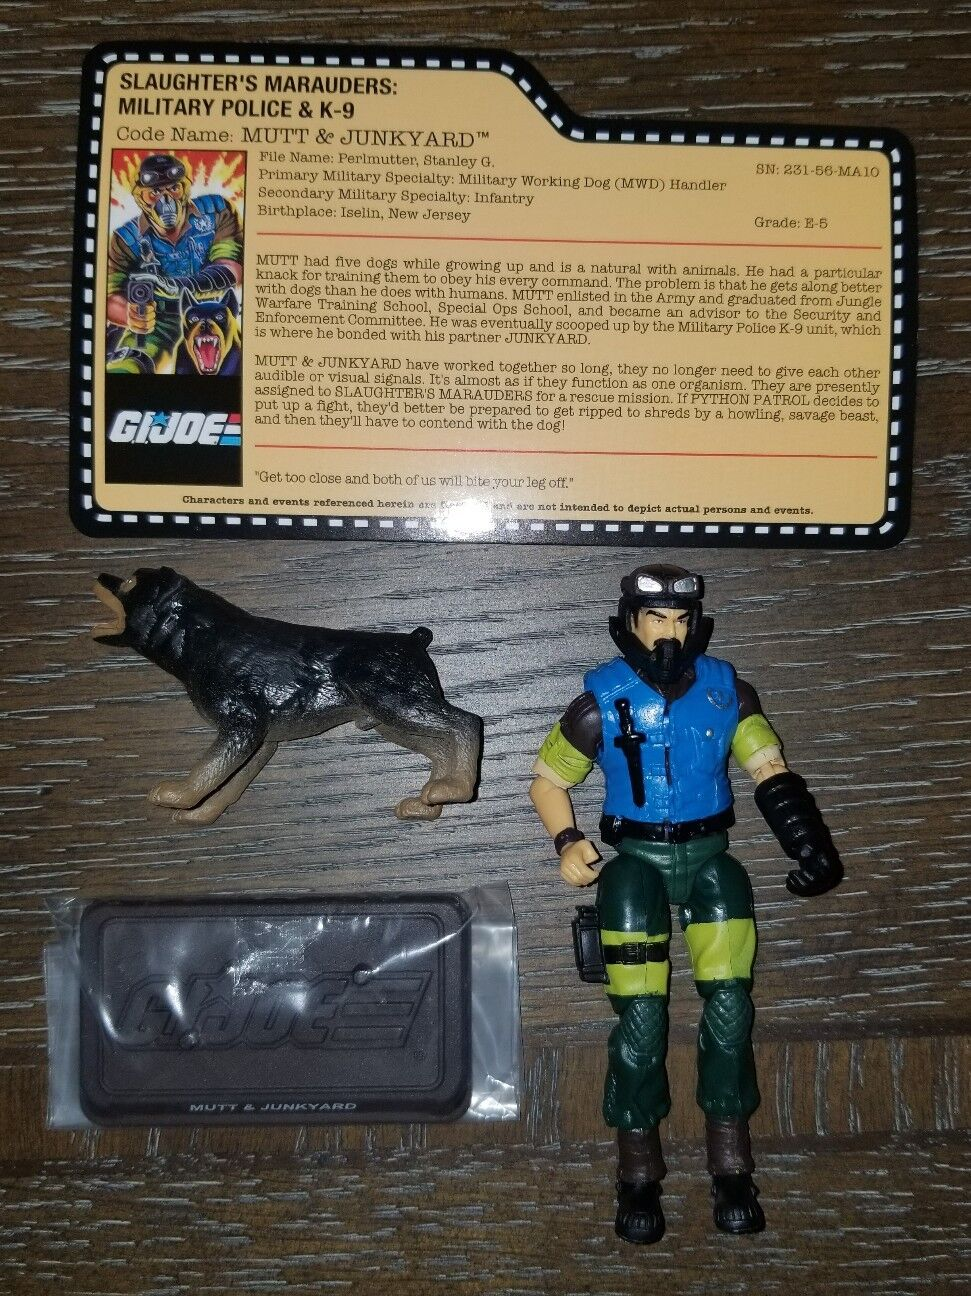 G.I.Joe con 2018 convention exclusive Slaughters Marauders Mutt & Junkyard